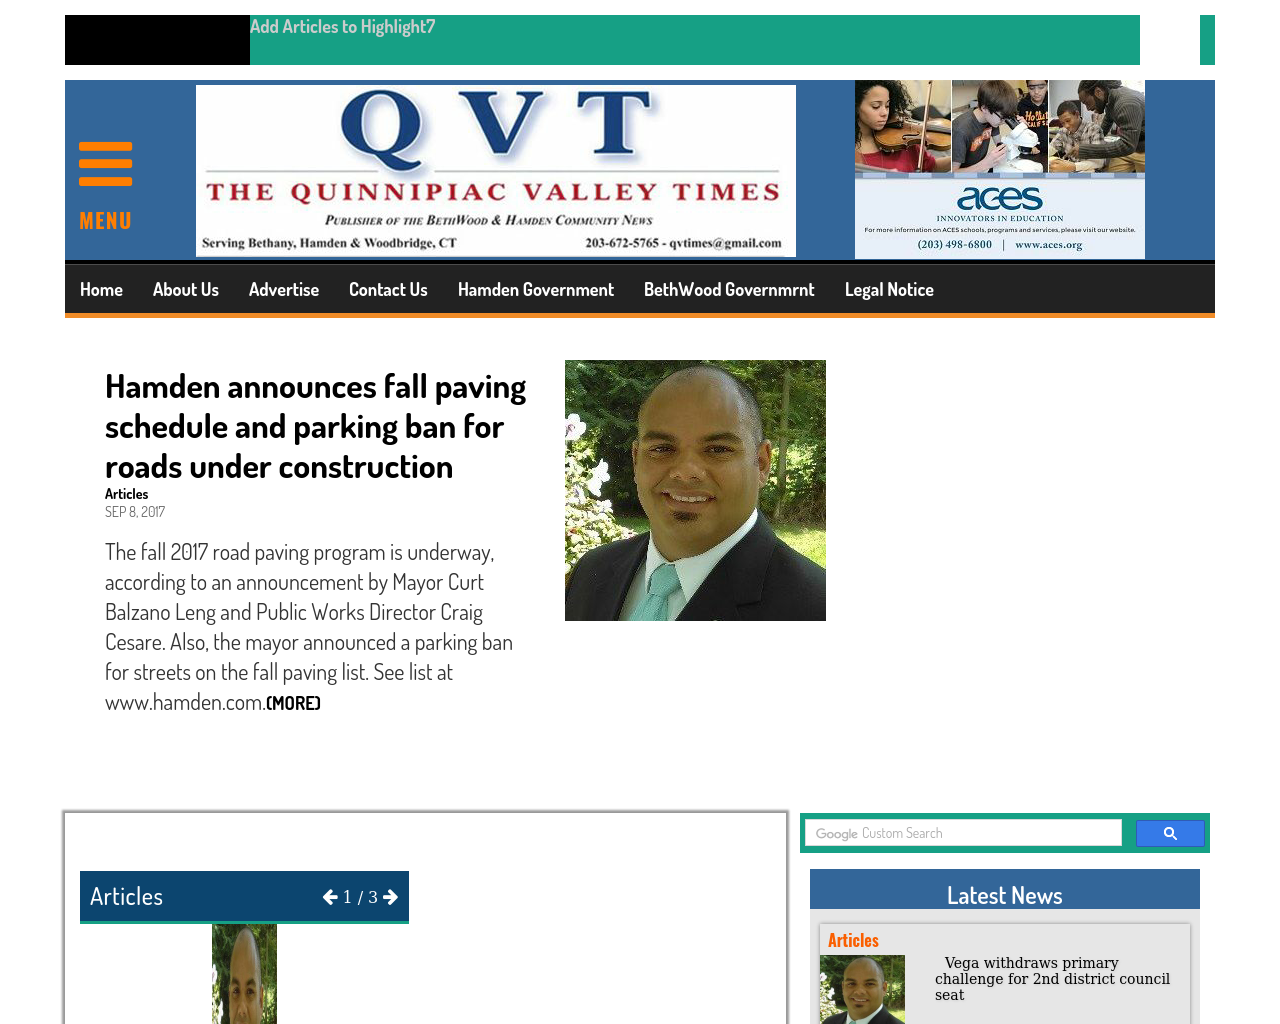 Quinnipiac-Valley-Times-Advertising-Reviews-Pricing